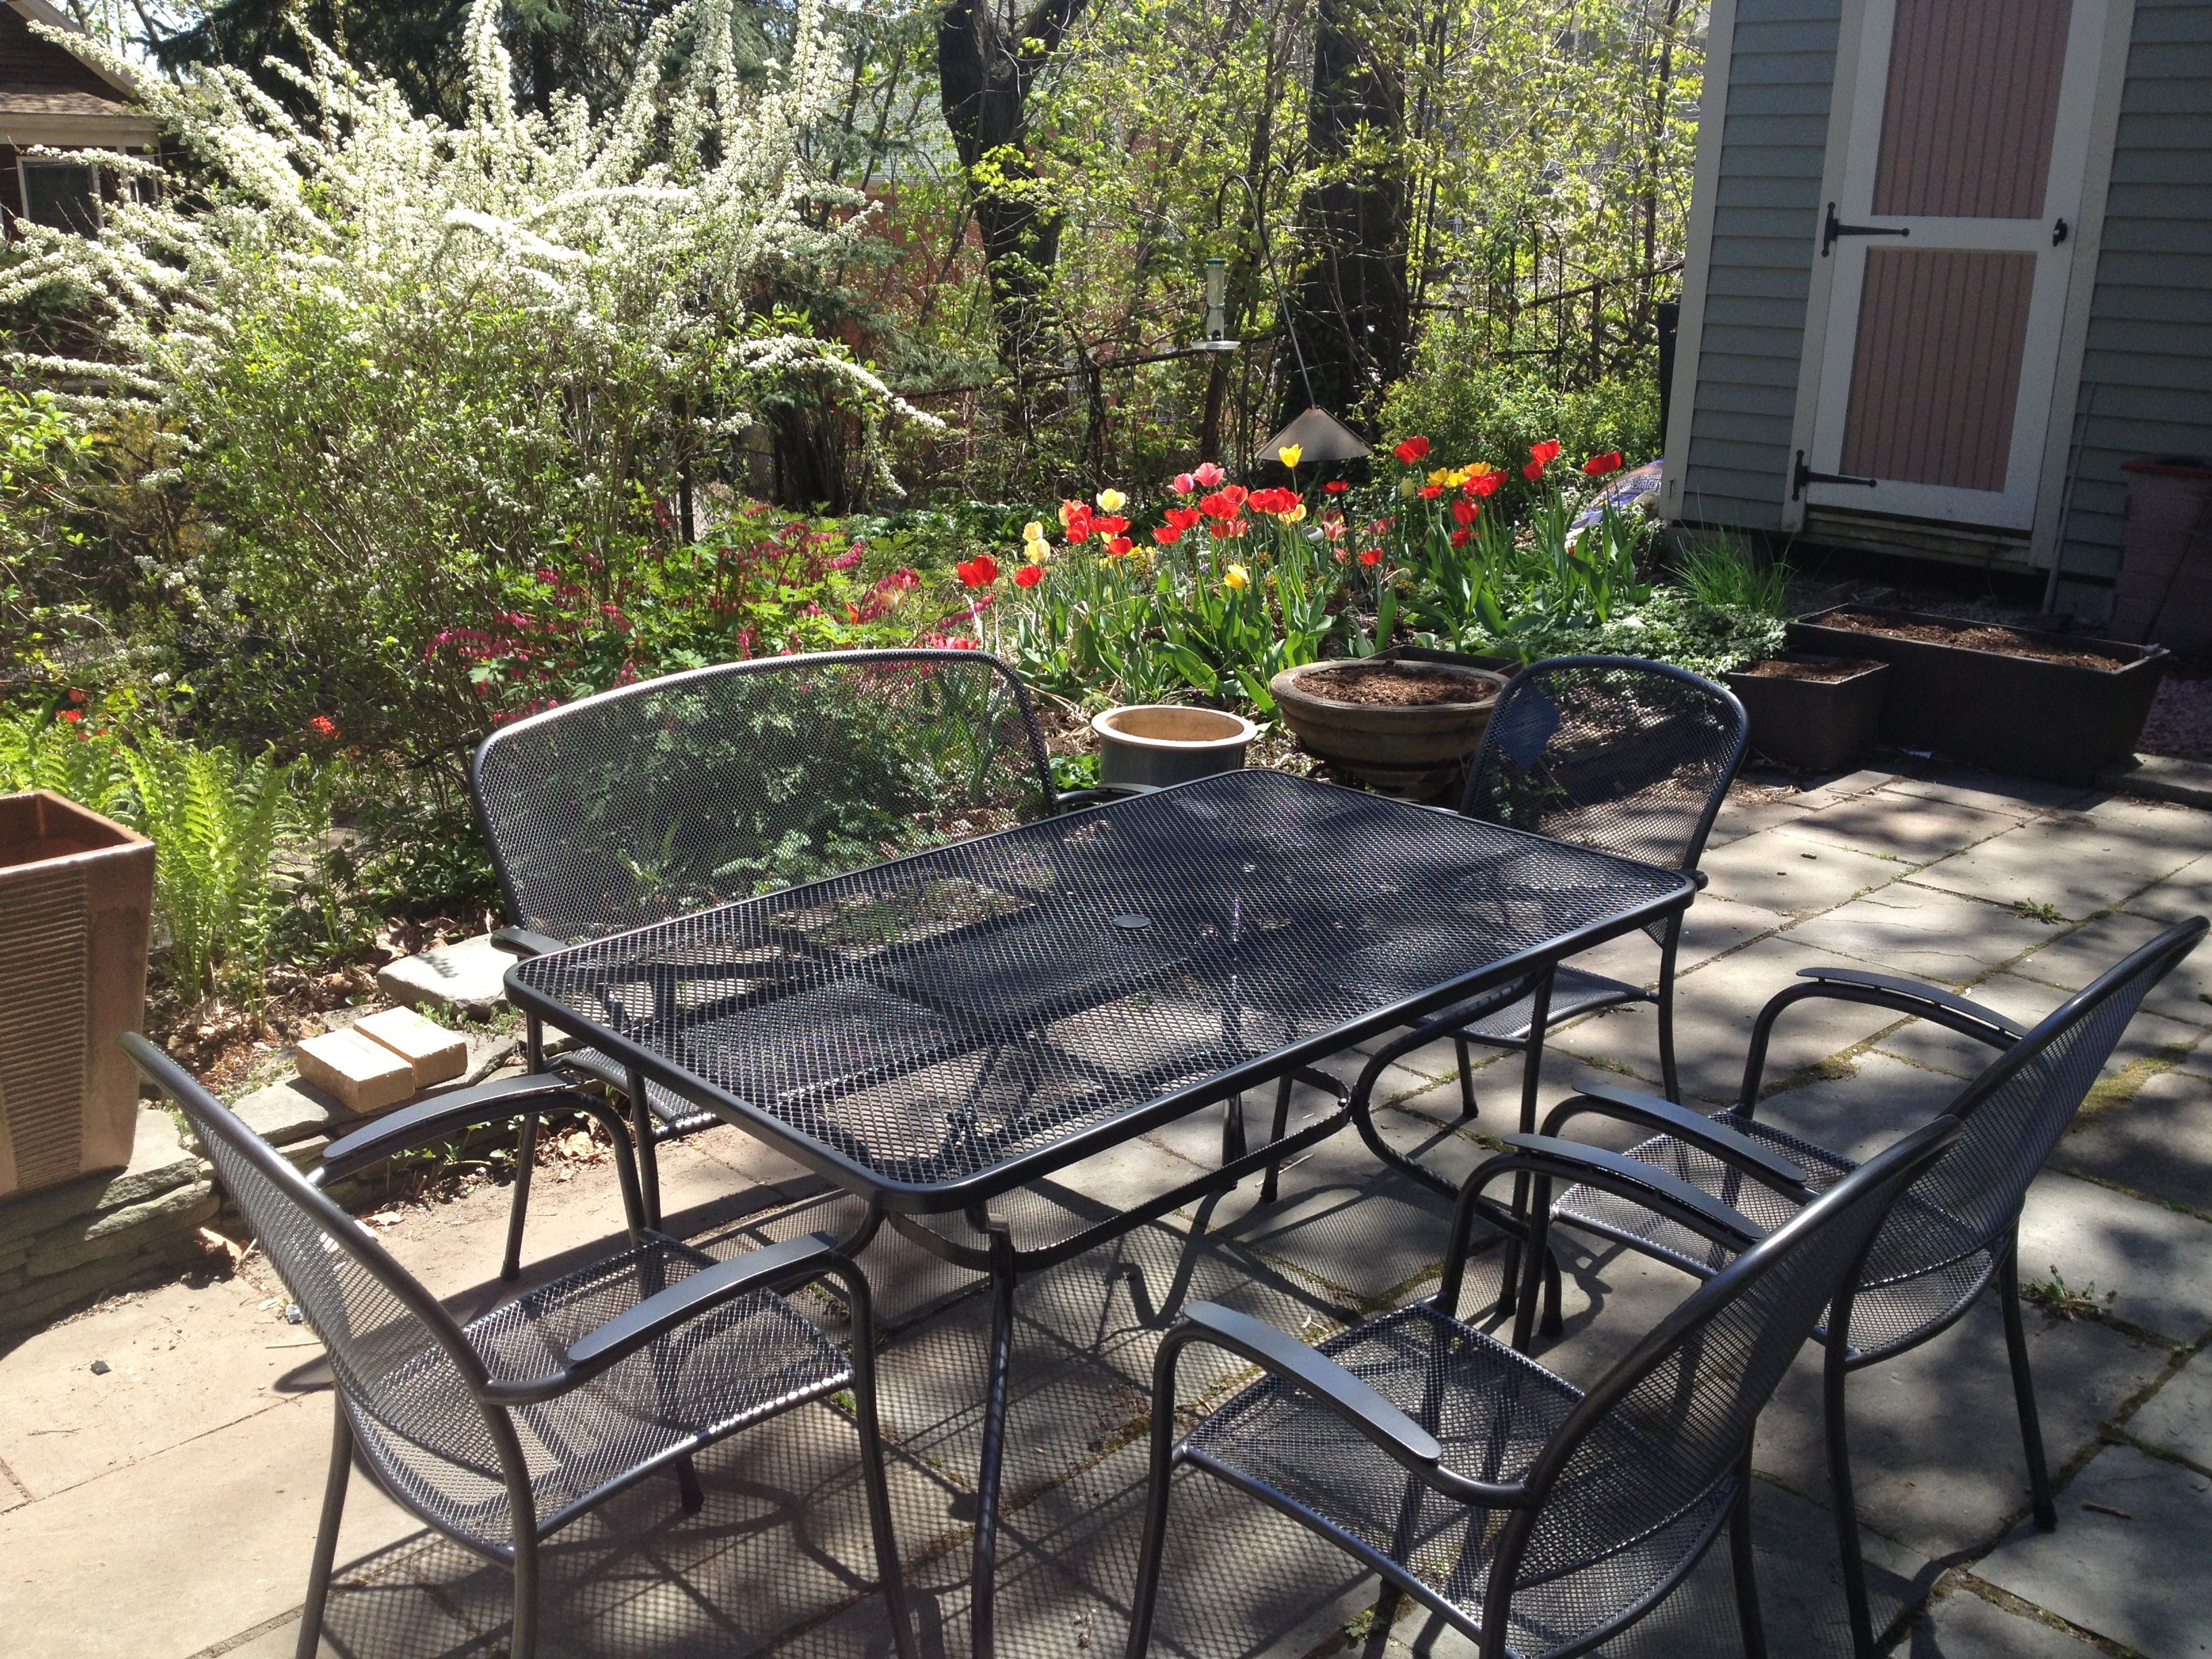 Kettler Wrought Iron Outdoor Furniture Dining Set From Patio Place